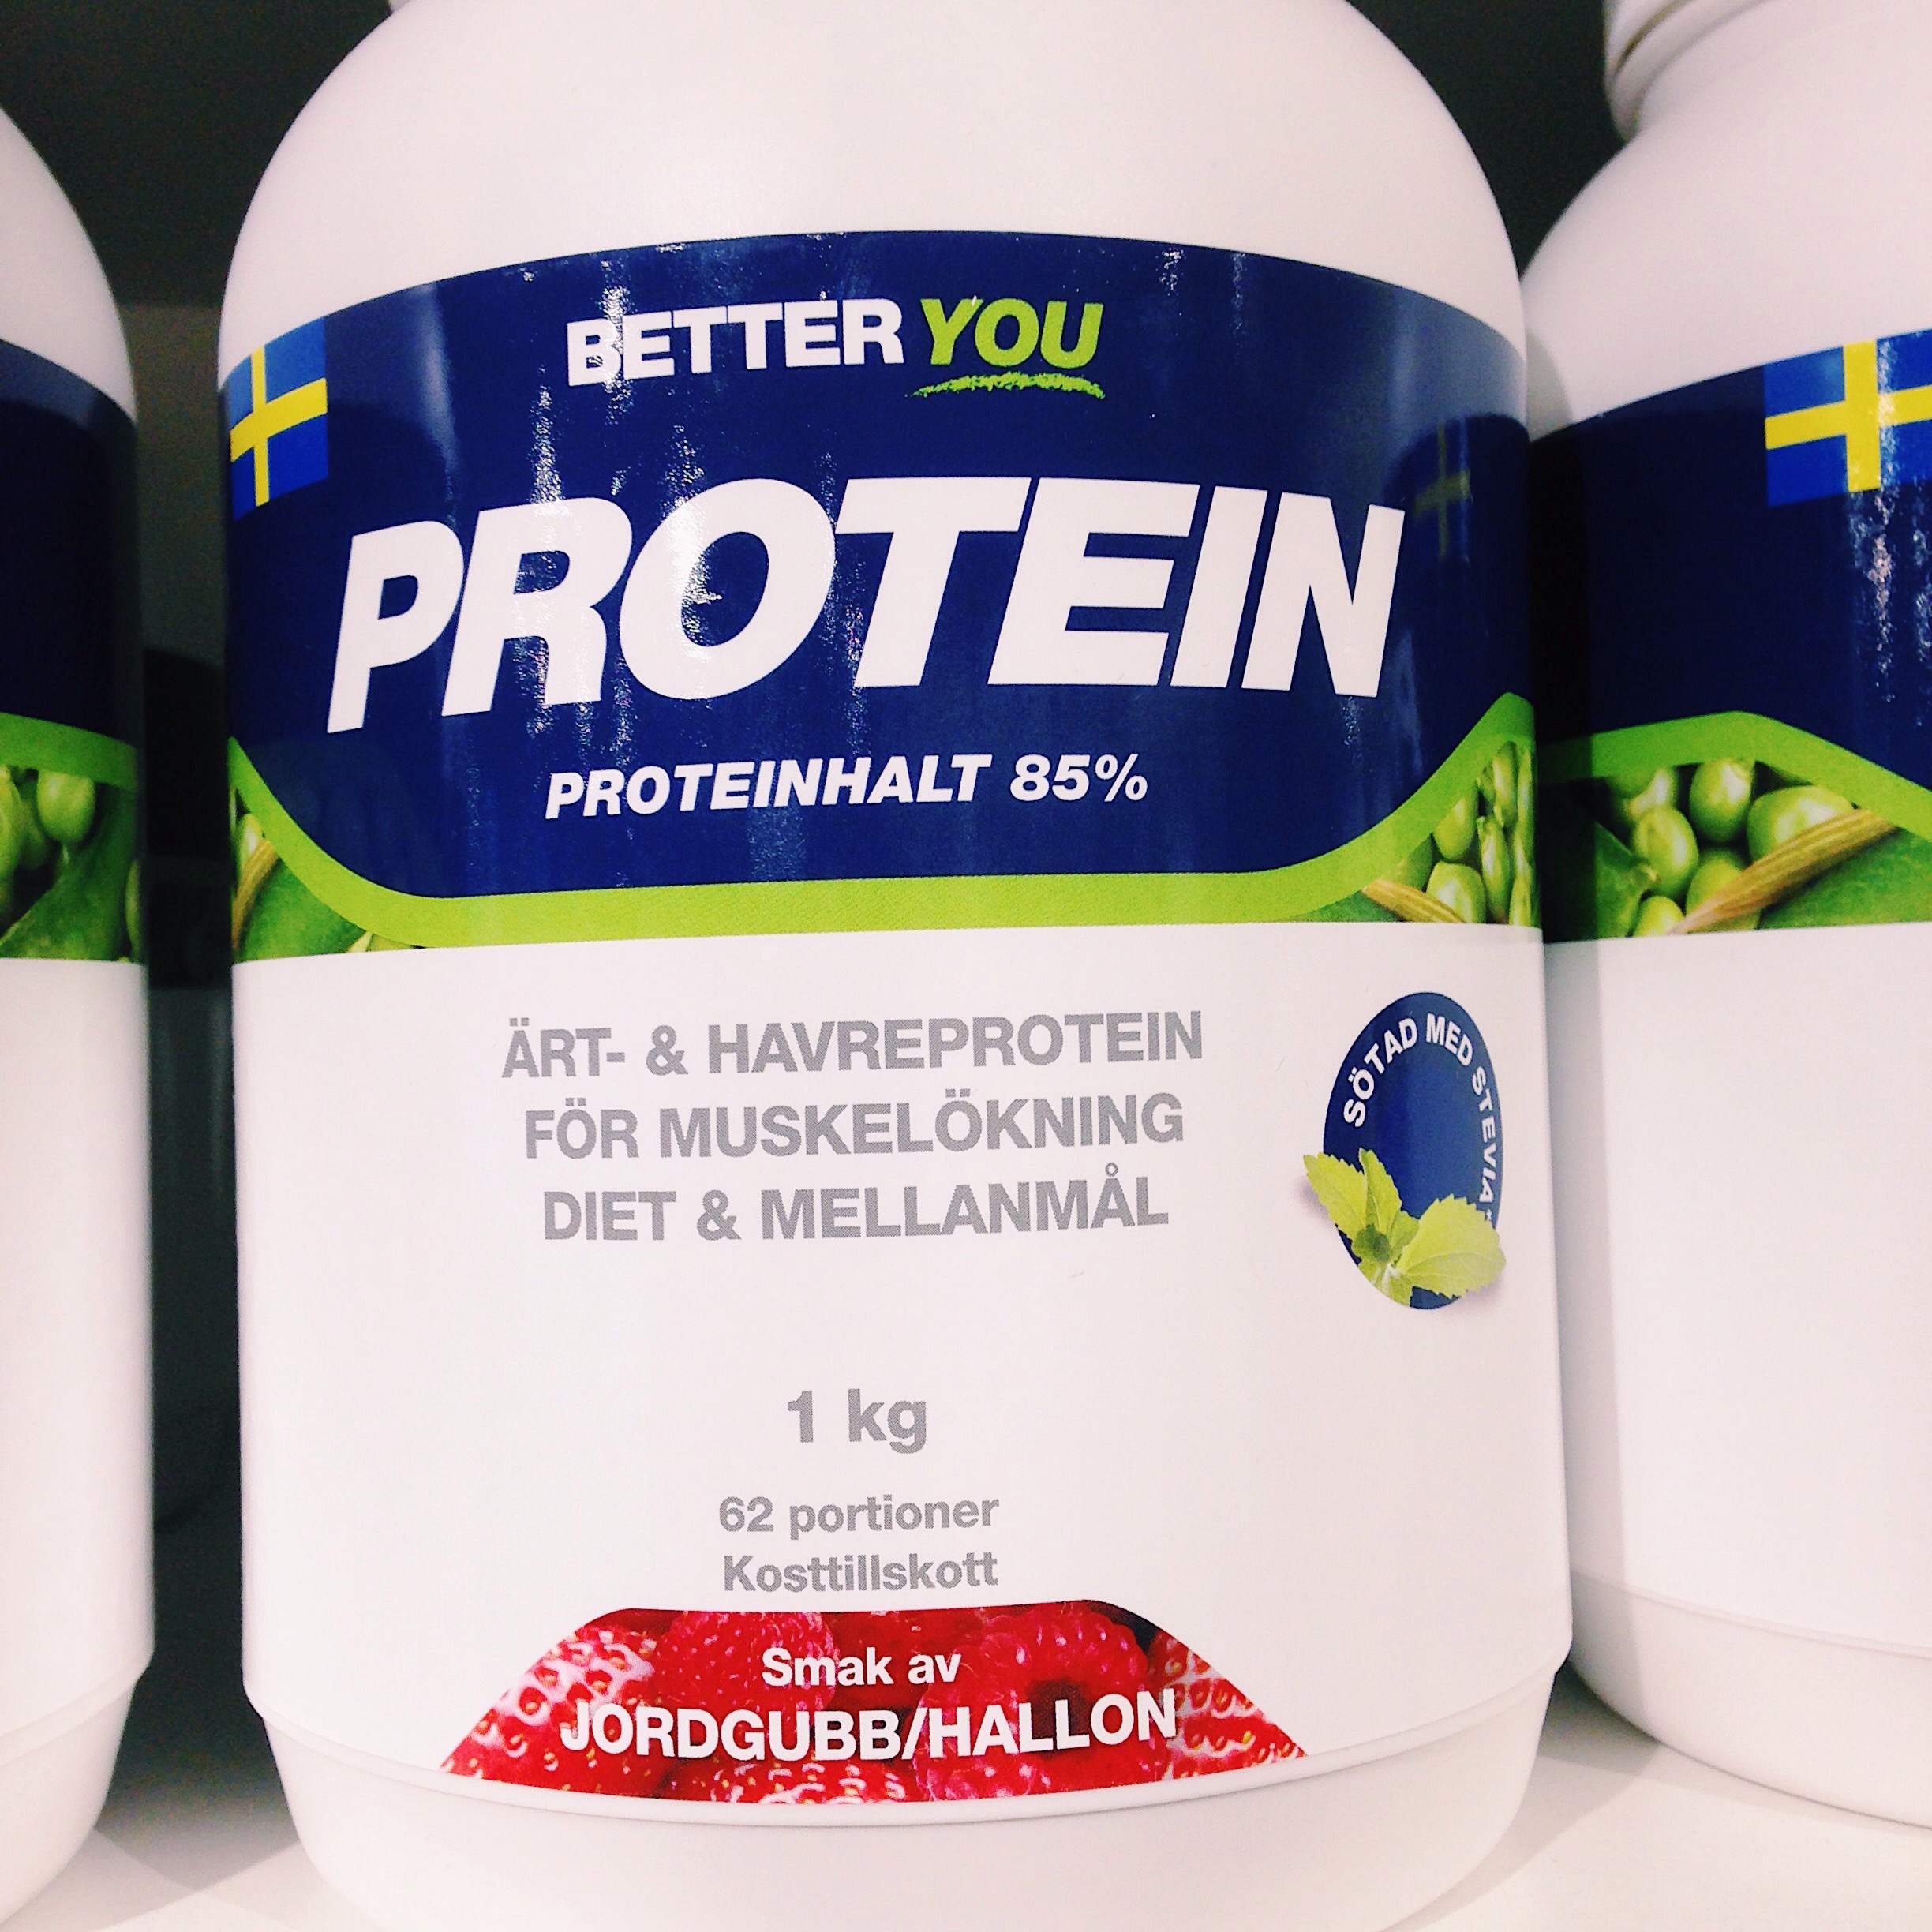 protein frukost - better you